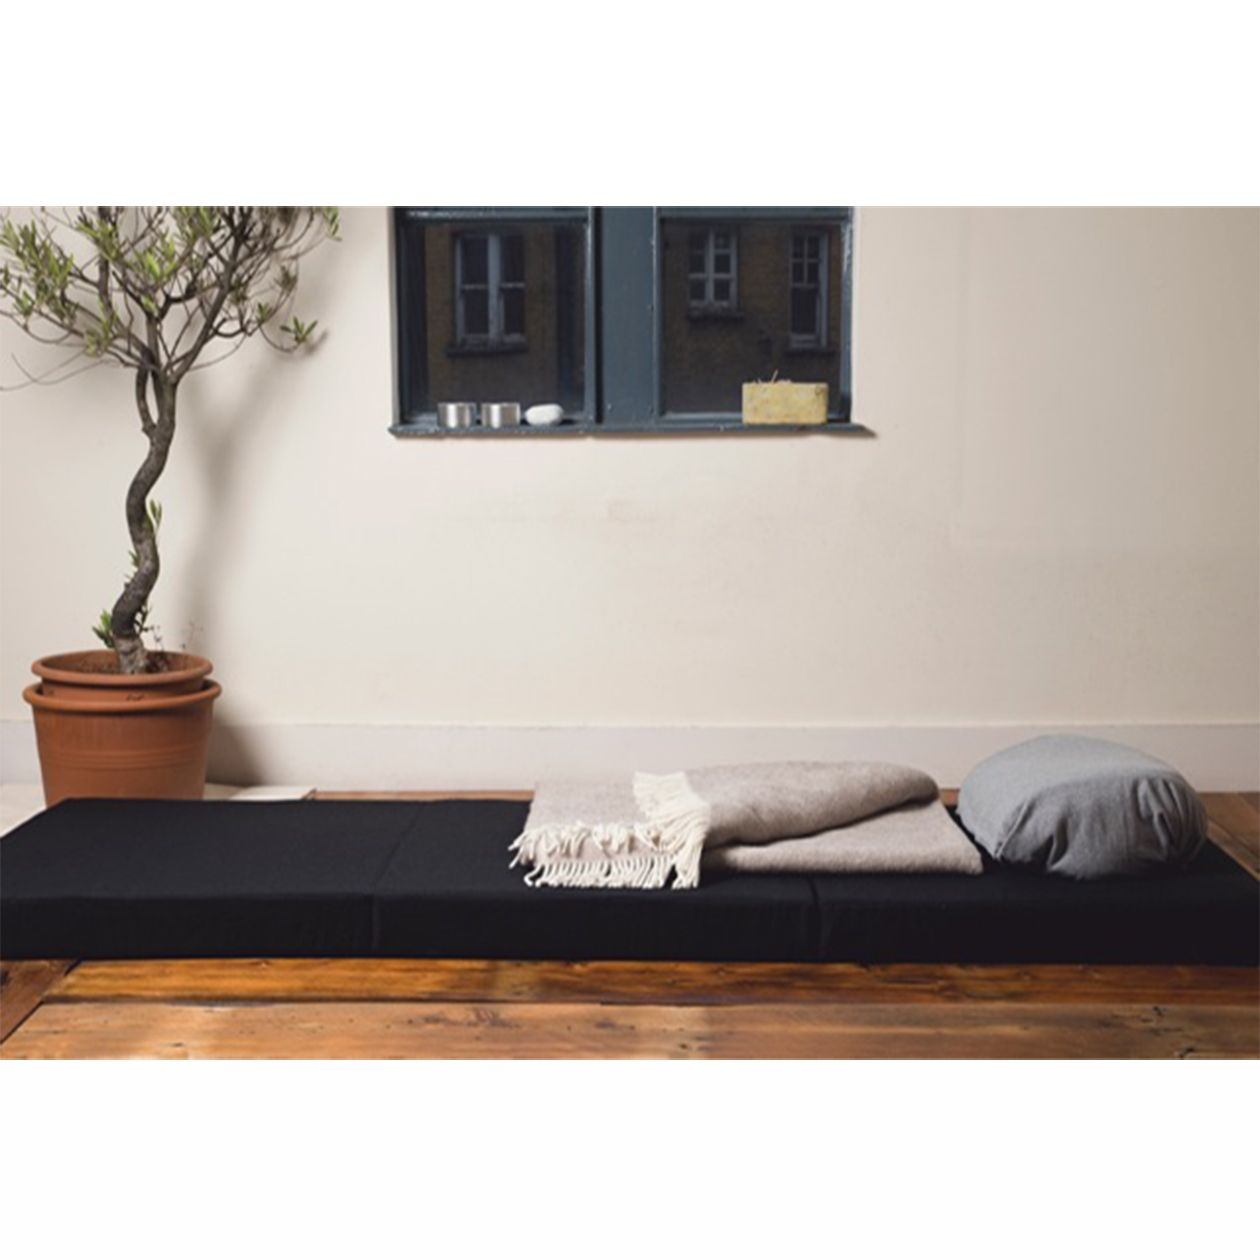 Online Sofa Store: MUJI Online - Welcome To The MUJI Online Store.